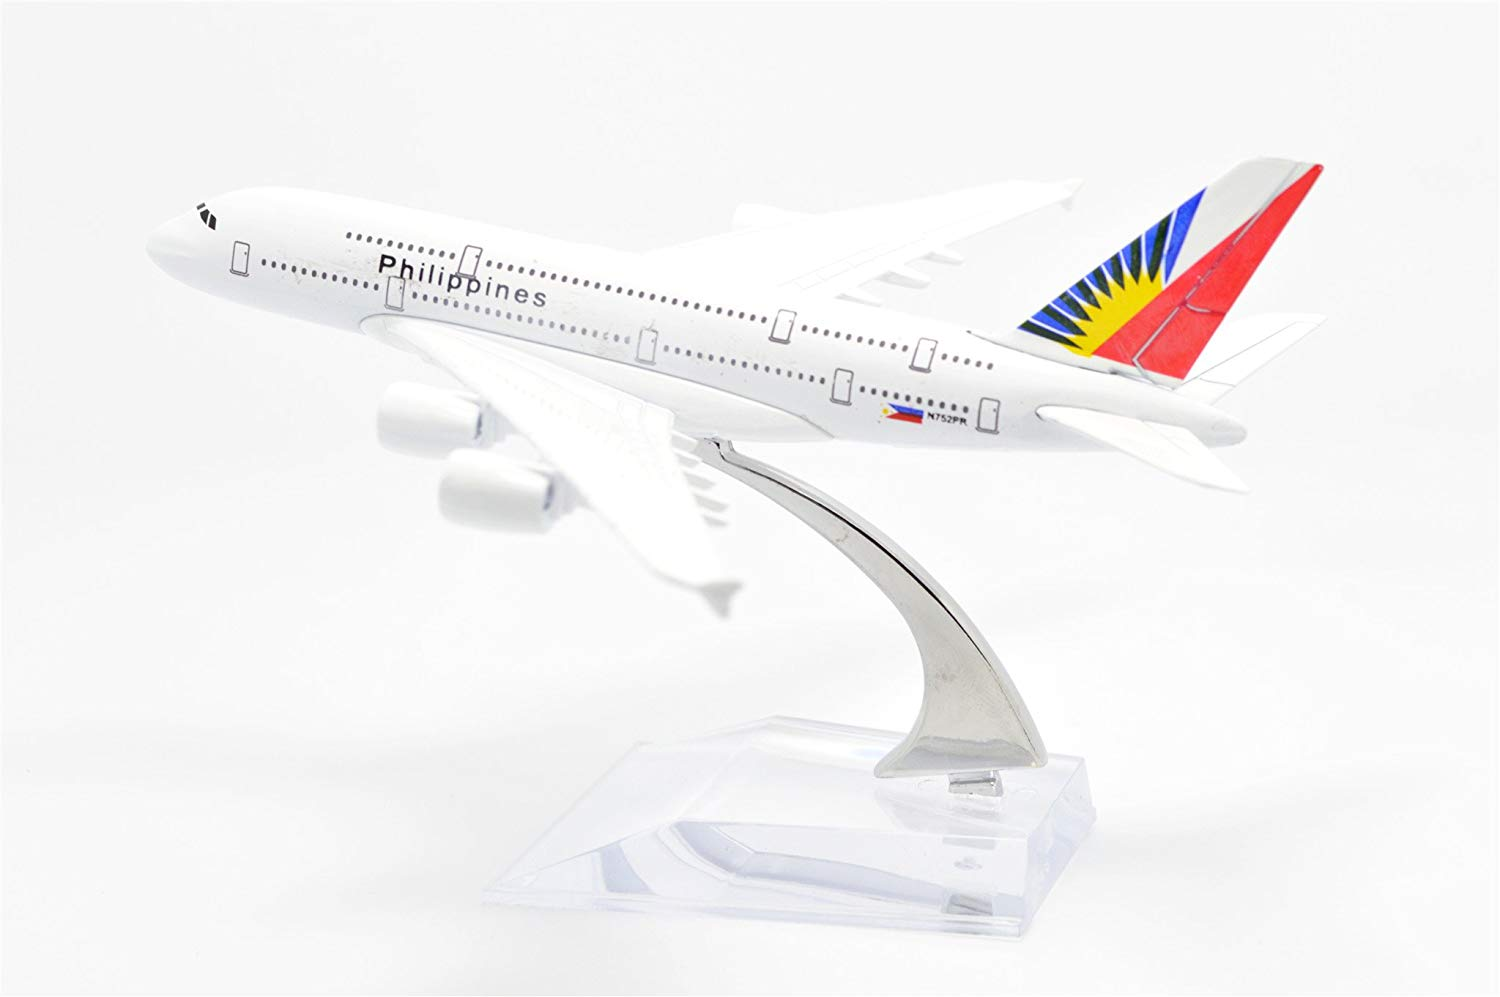 TM 1:400 16cm Airbus A350 Philippine Airlines Metal Airplane Model Plane Toy Plane Model TANG DYNASTY